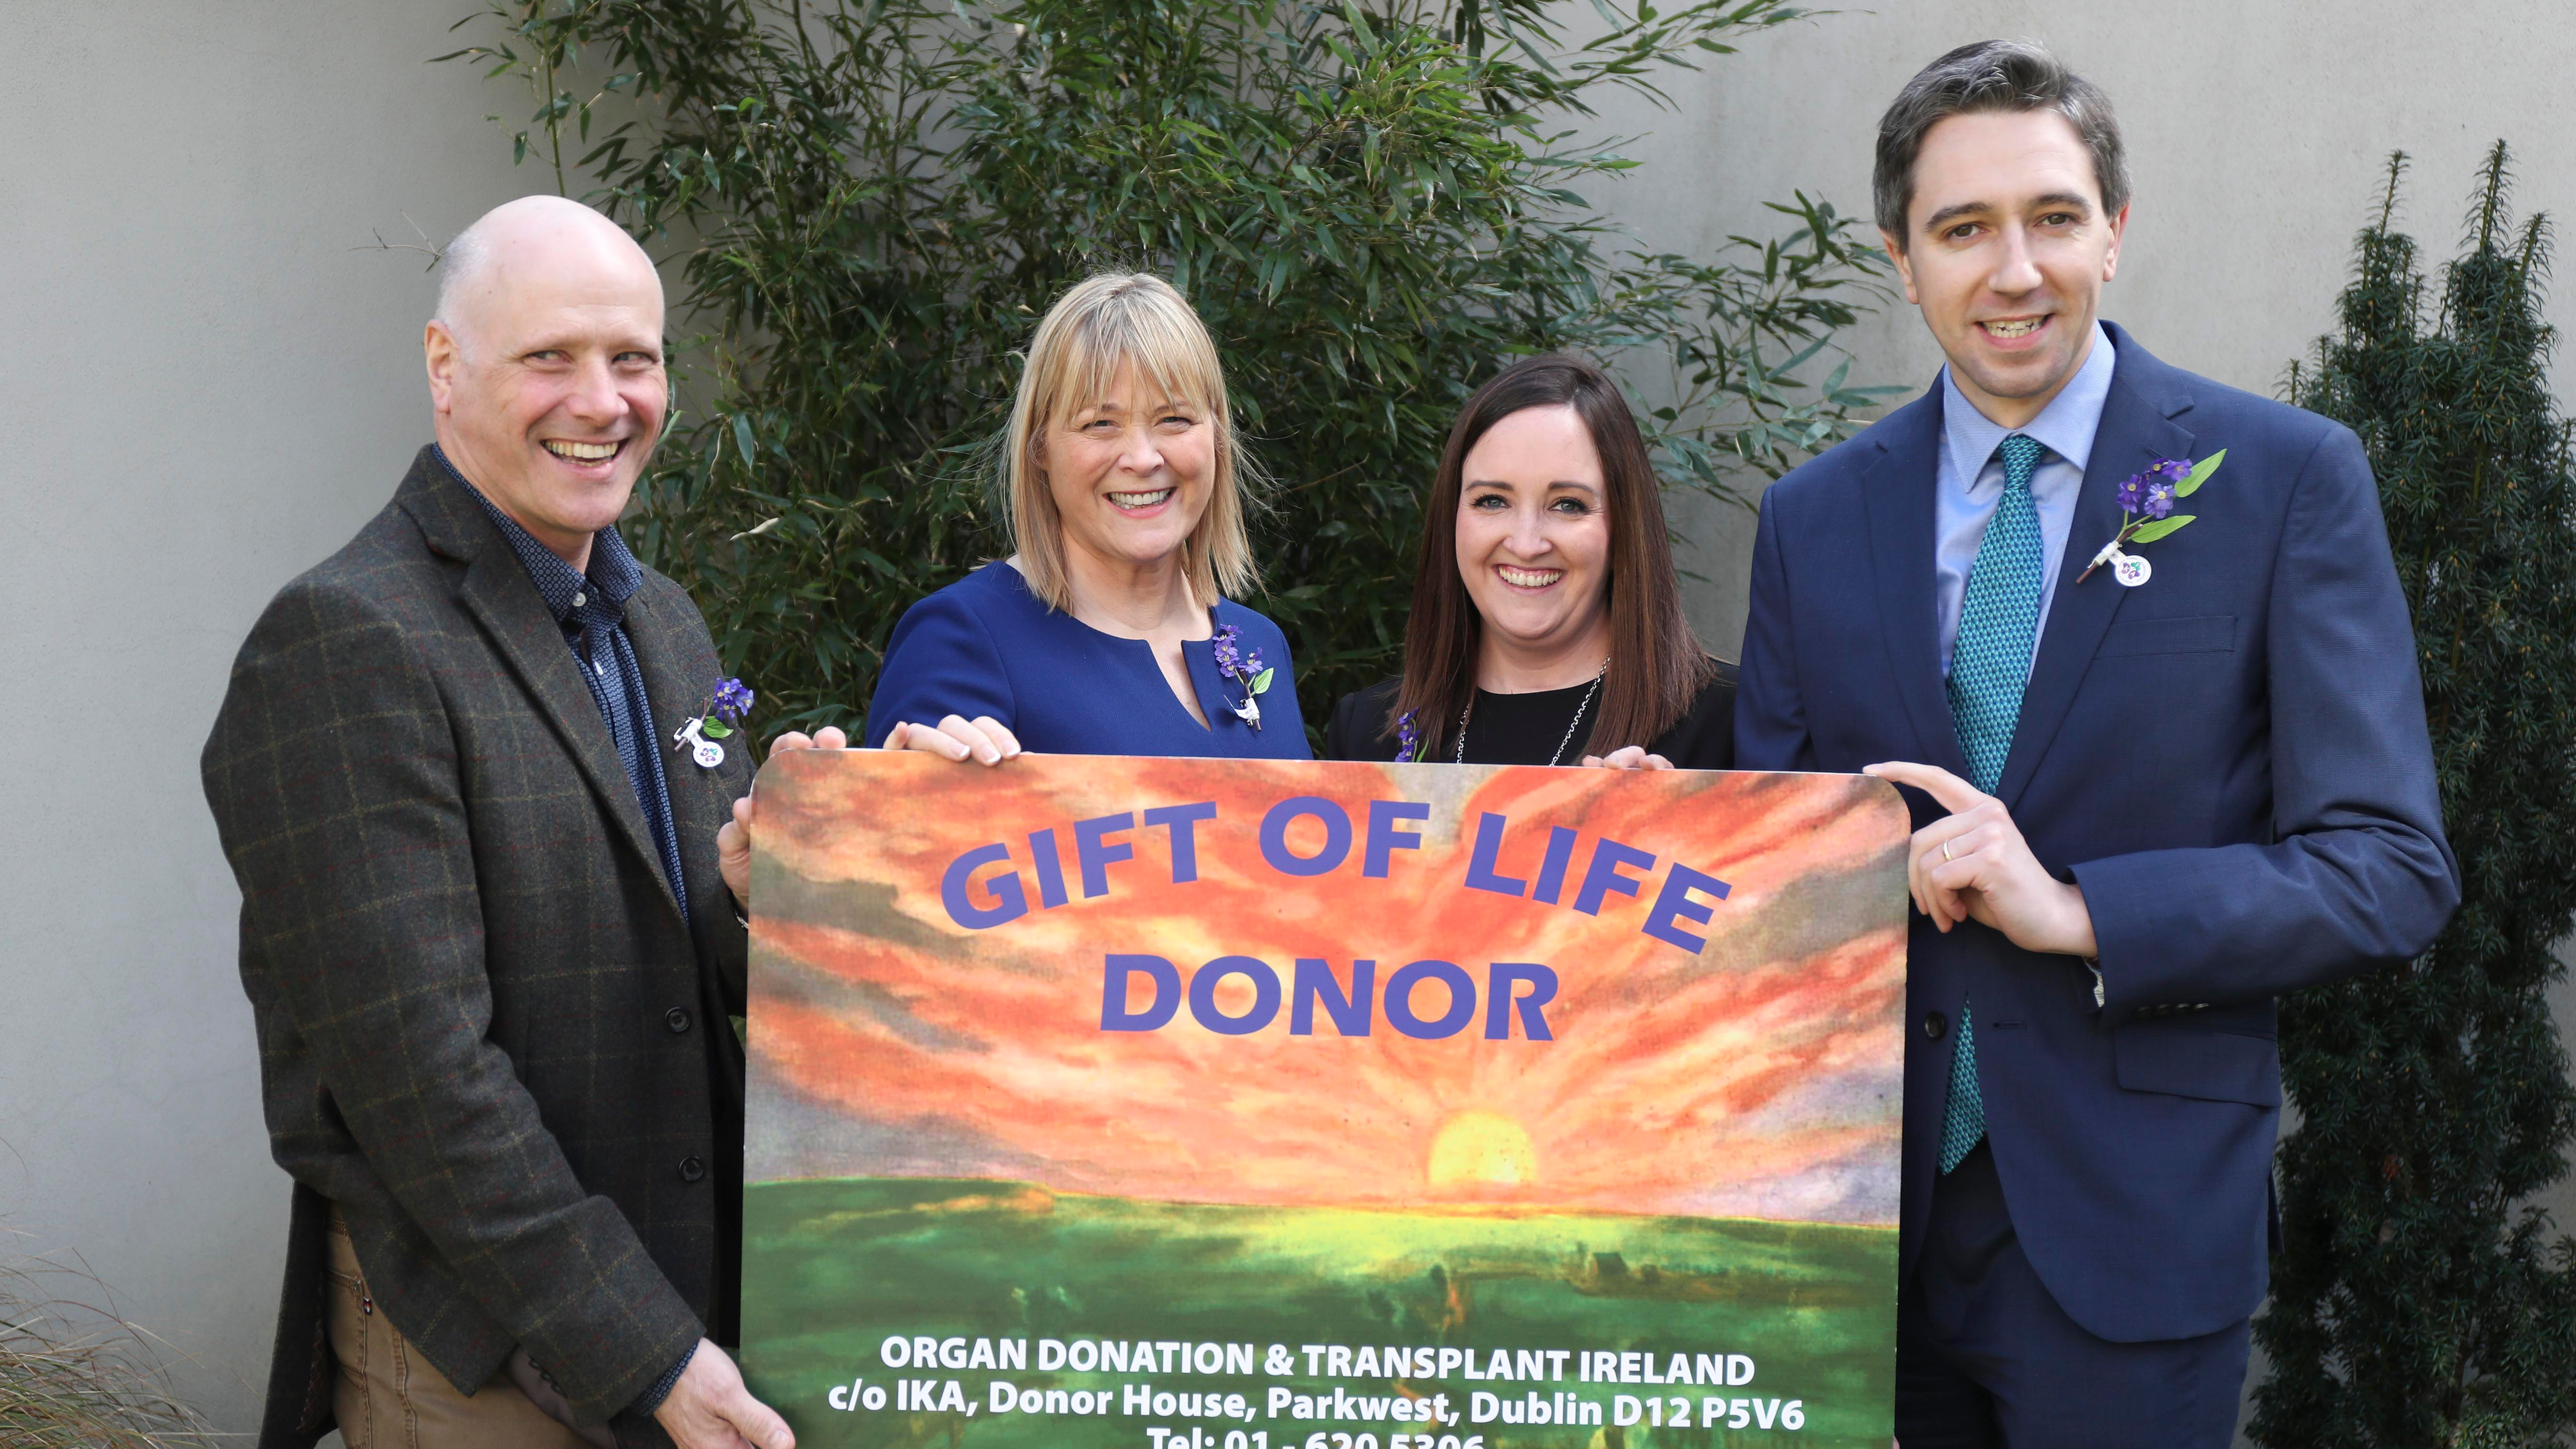 IKA CALLS FOR PRACTICAL CHANGES TO IMPROVE ORGAN DONATION RATES